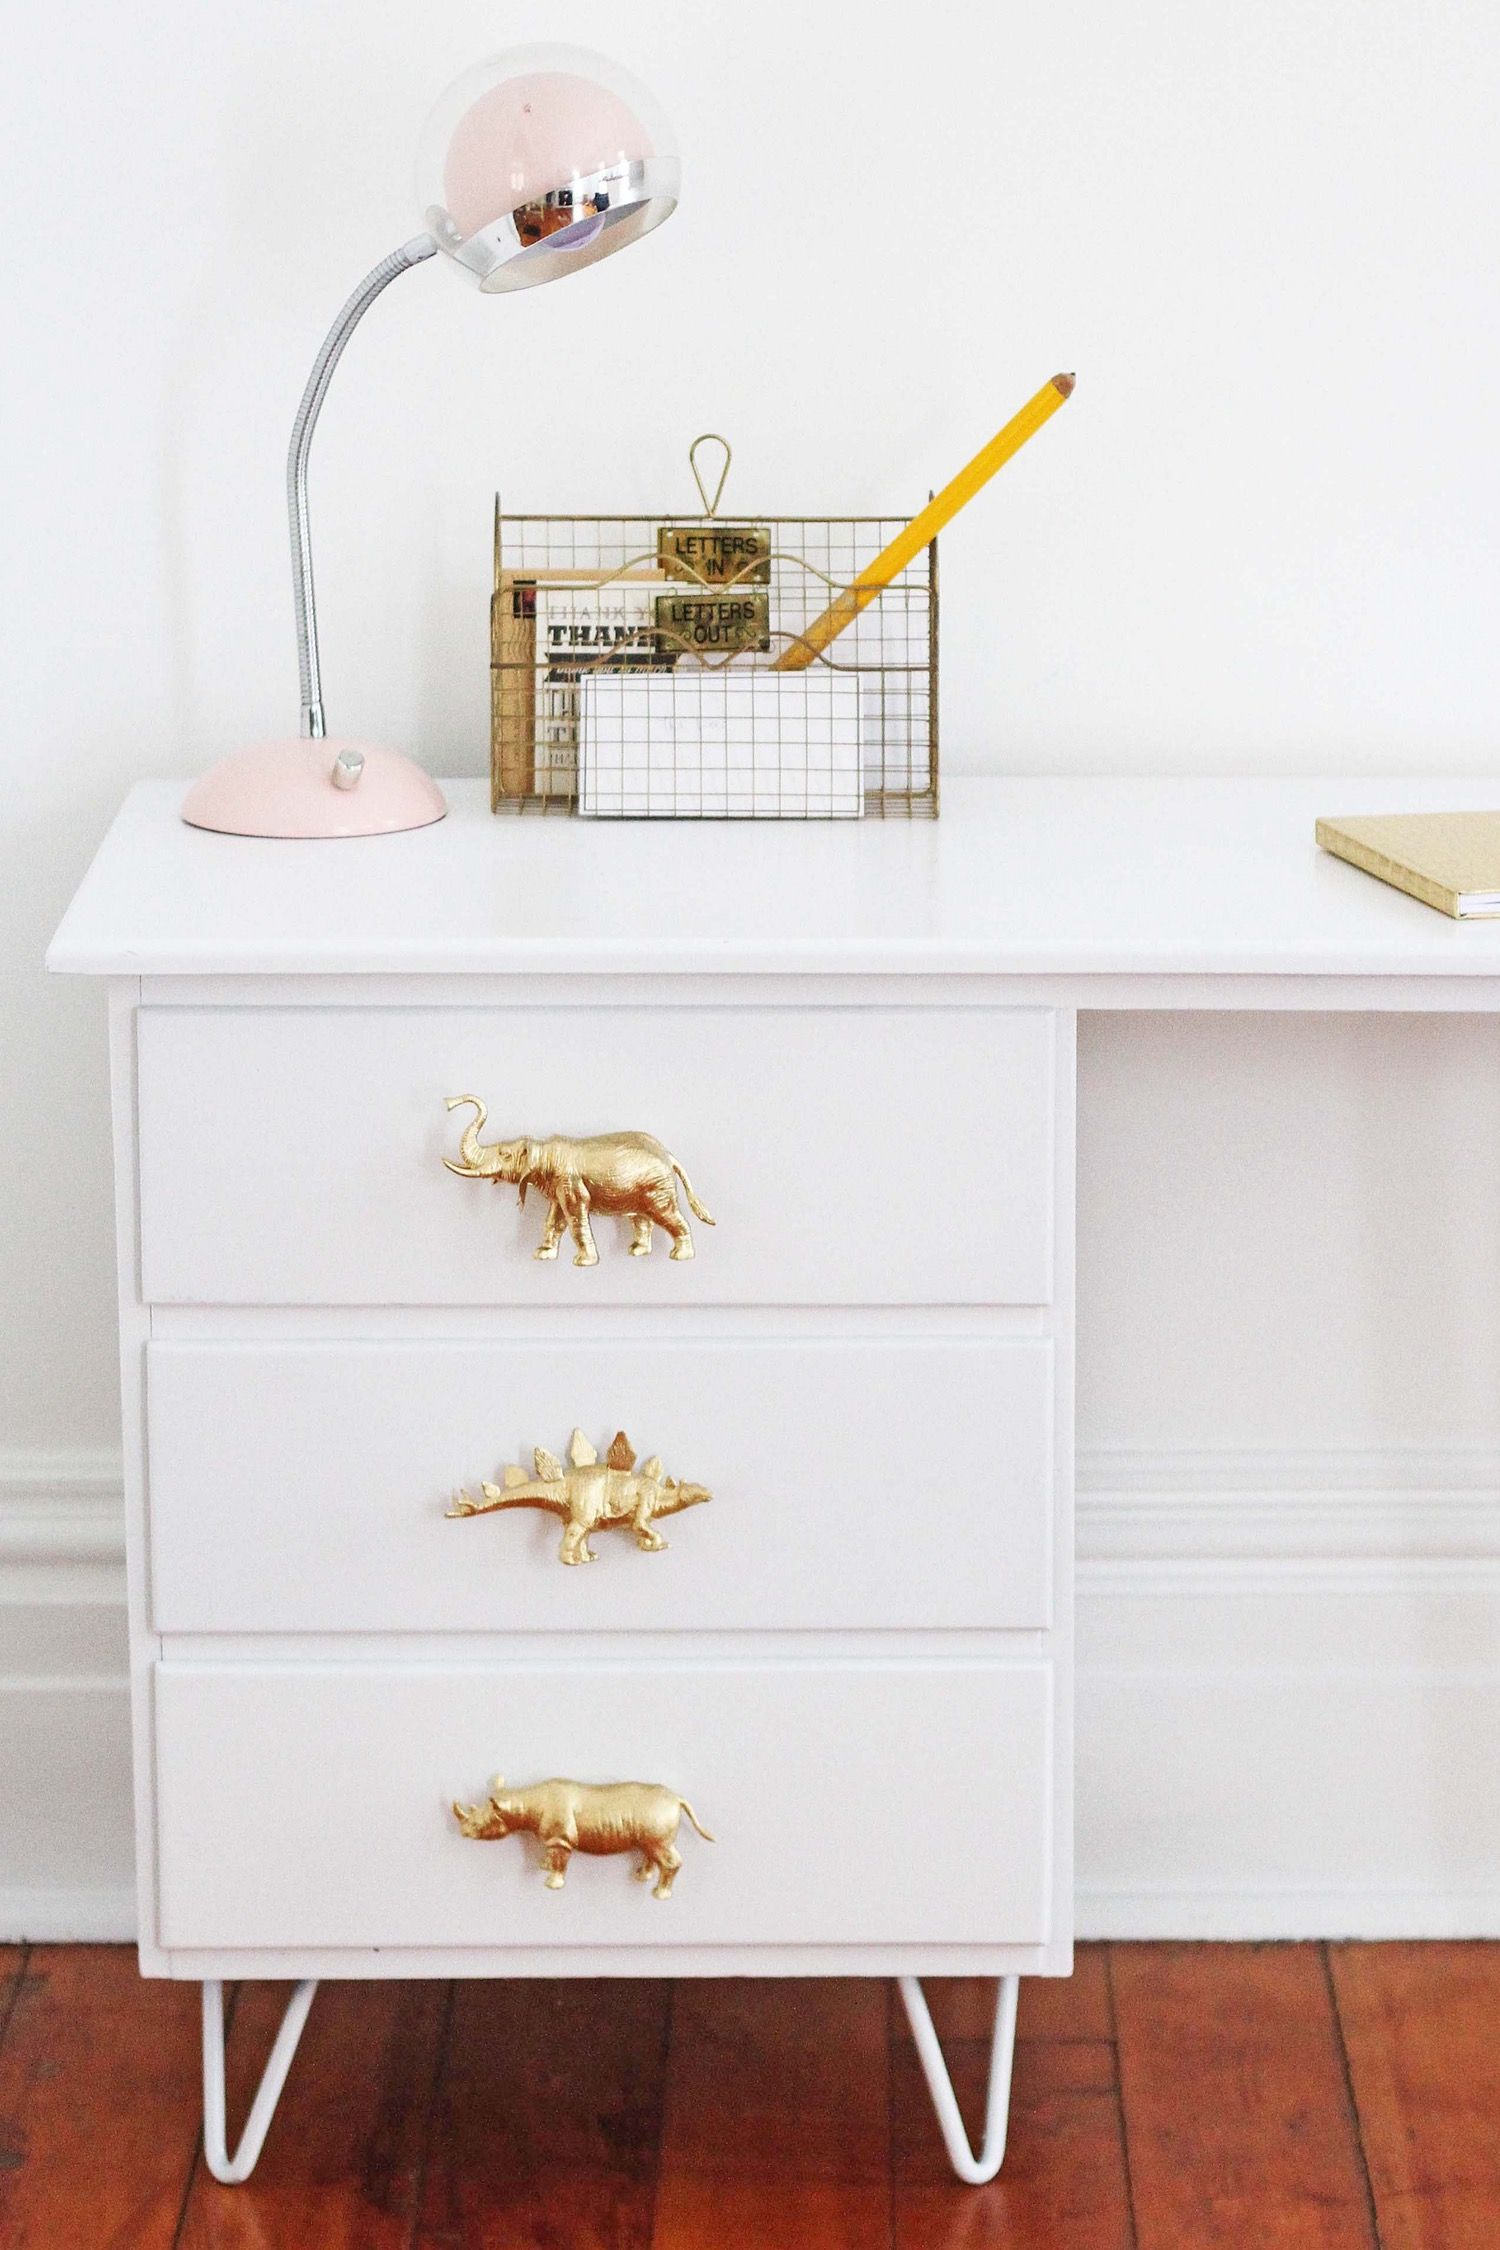 How To Make Diy Drawer Pulls From Just About Anything Diy Drawers Gorgeous Furniture Home Diy